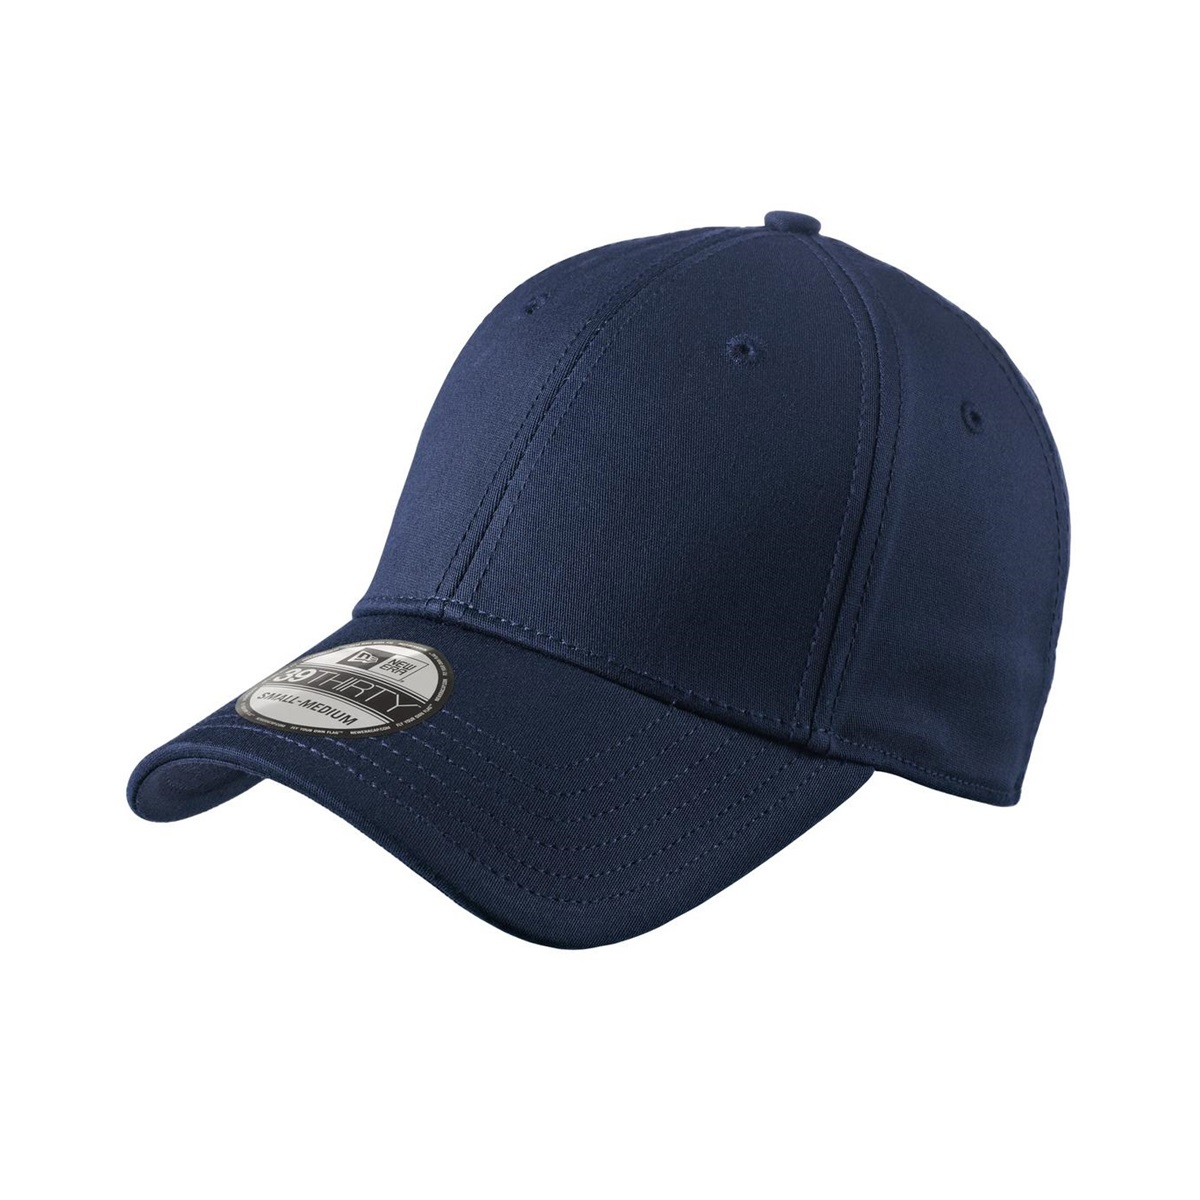 New Era NE1000 Structured Stretch Cotton Cap - Deep Navy ... 610f33afa908